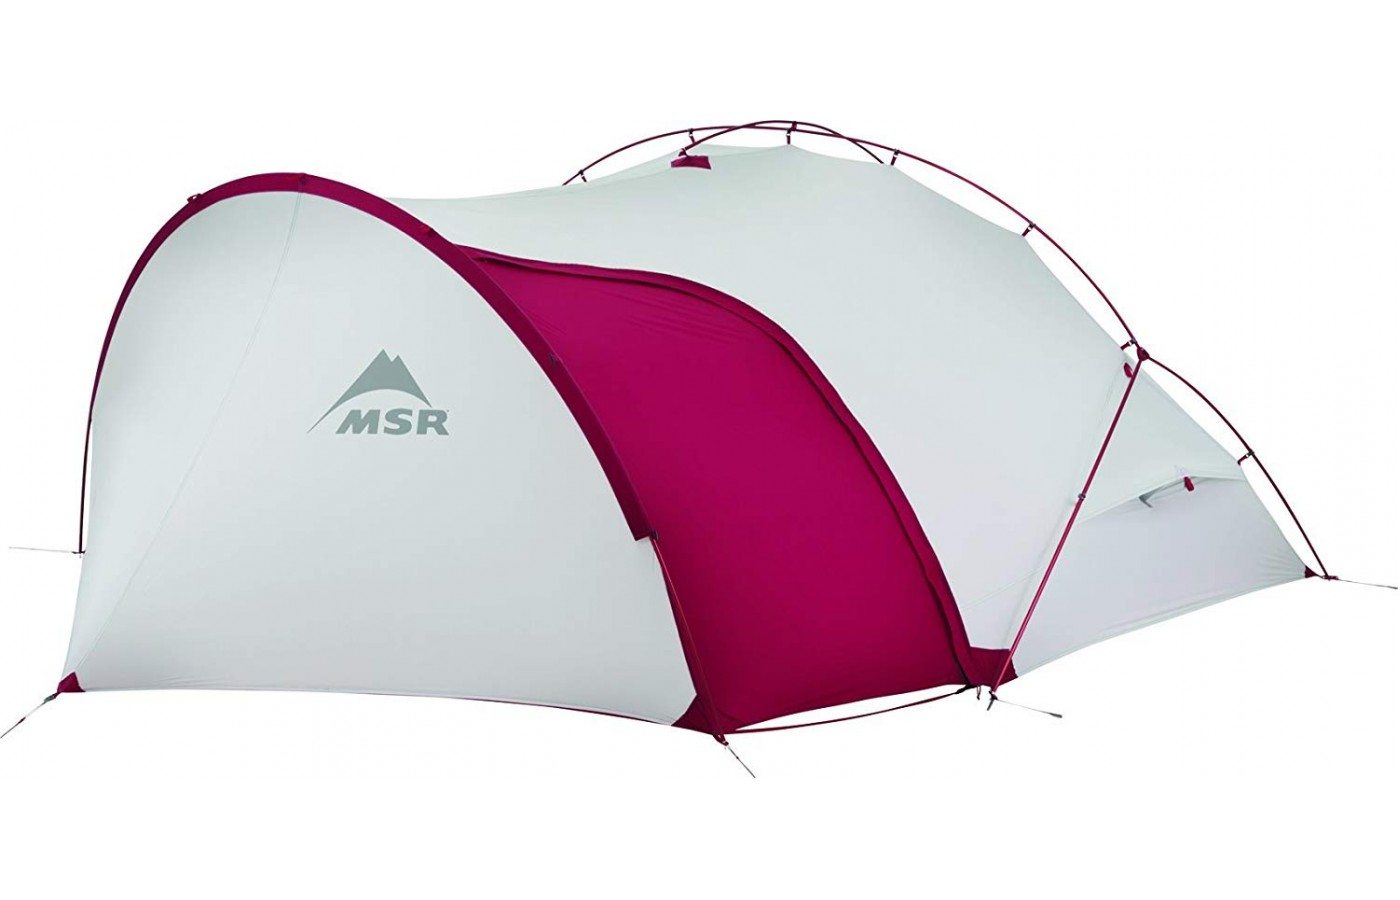 This tent is meant to be used by two motorcyclists.